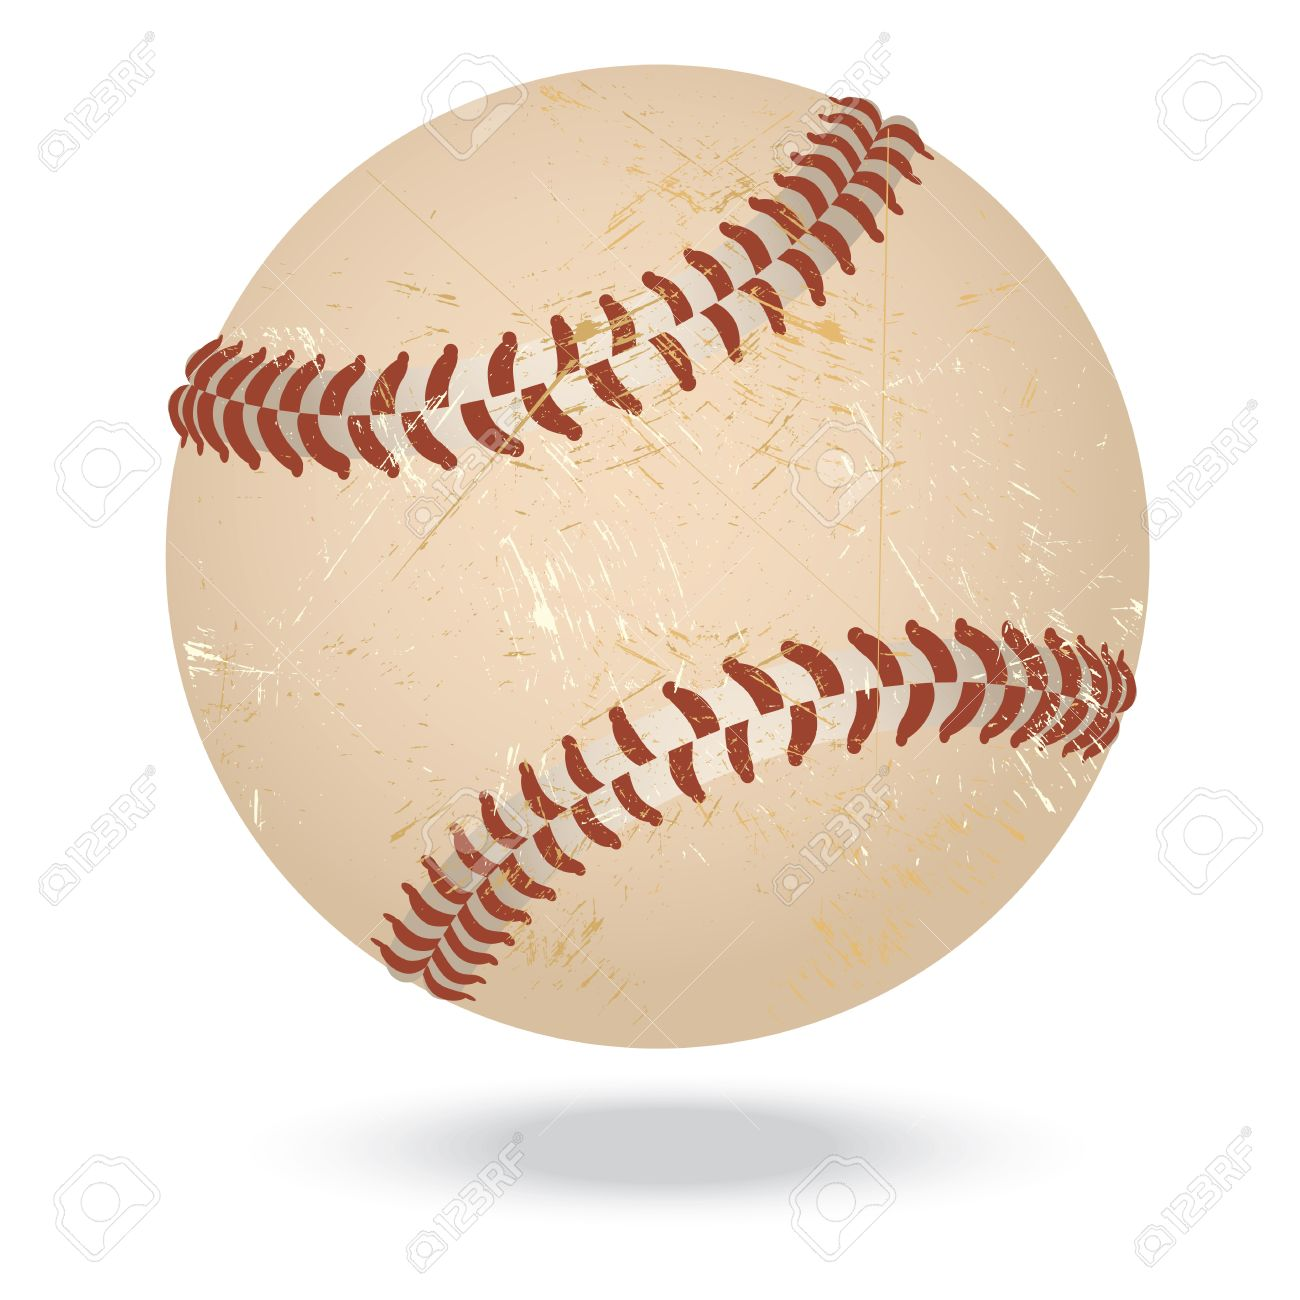 illustration of highly rendered vintage baseball isolated in